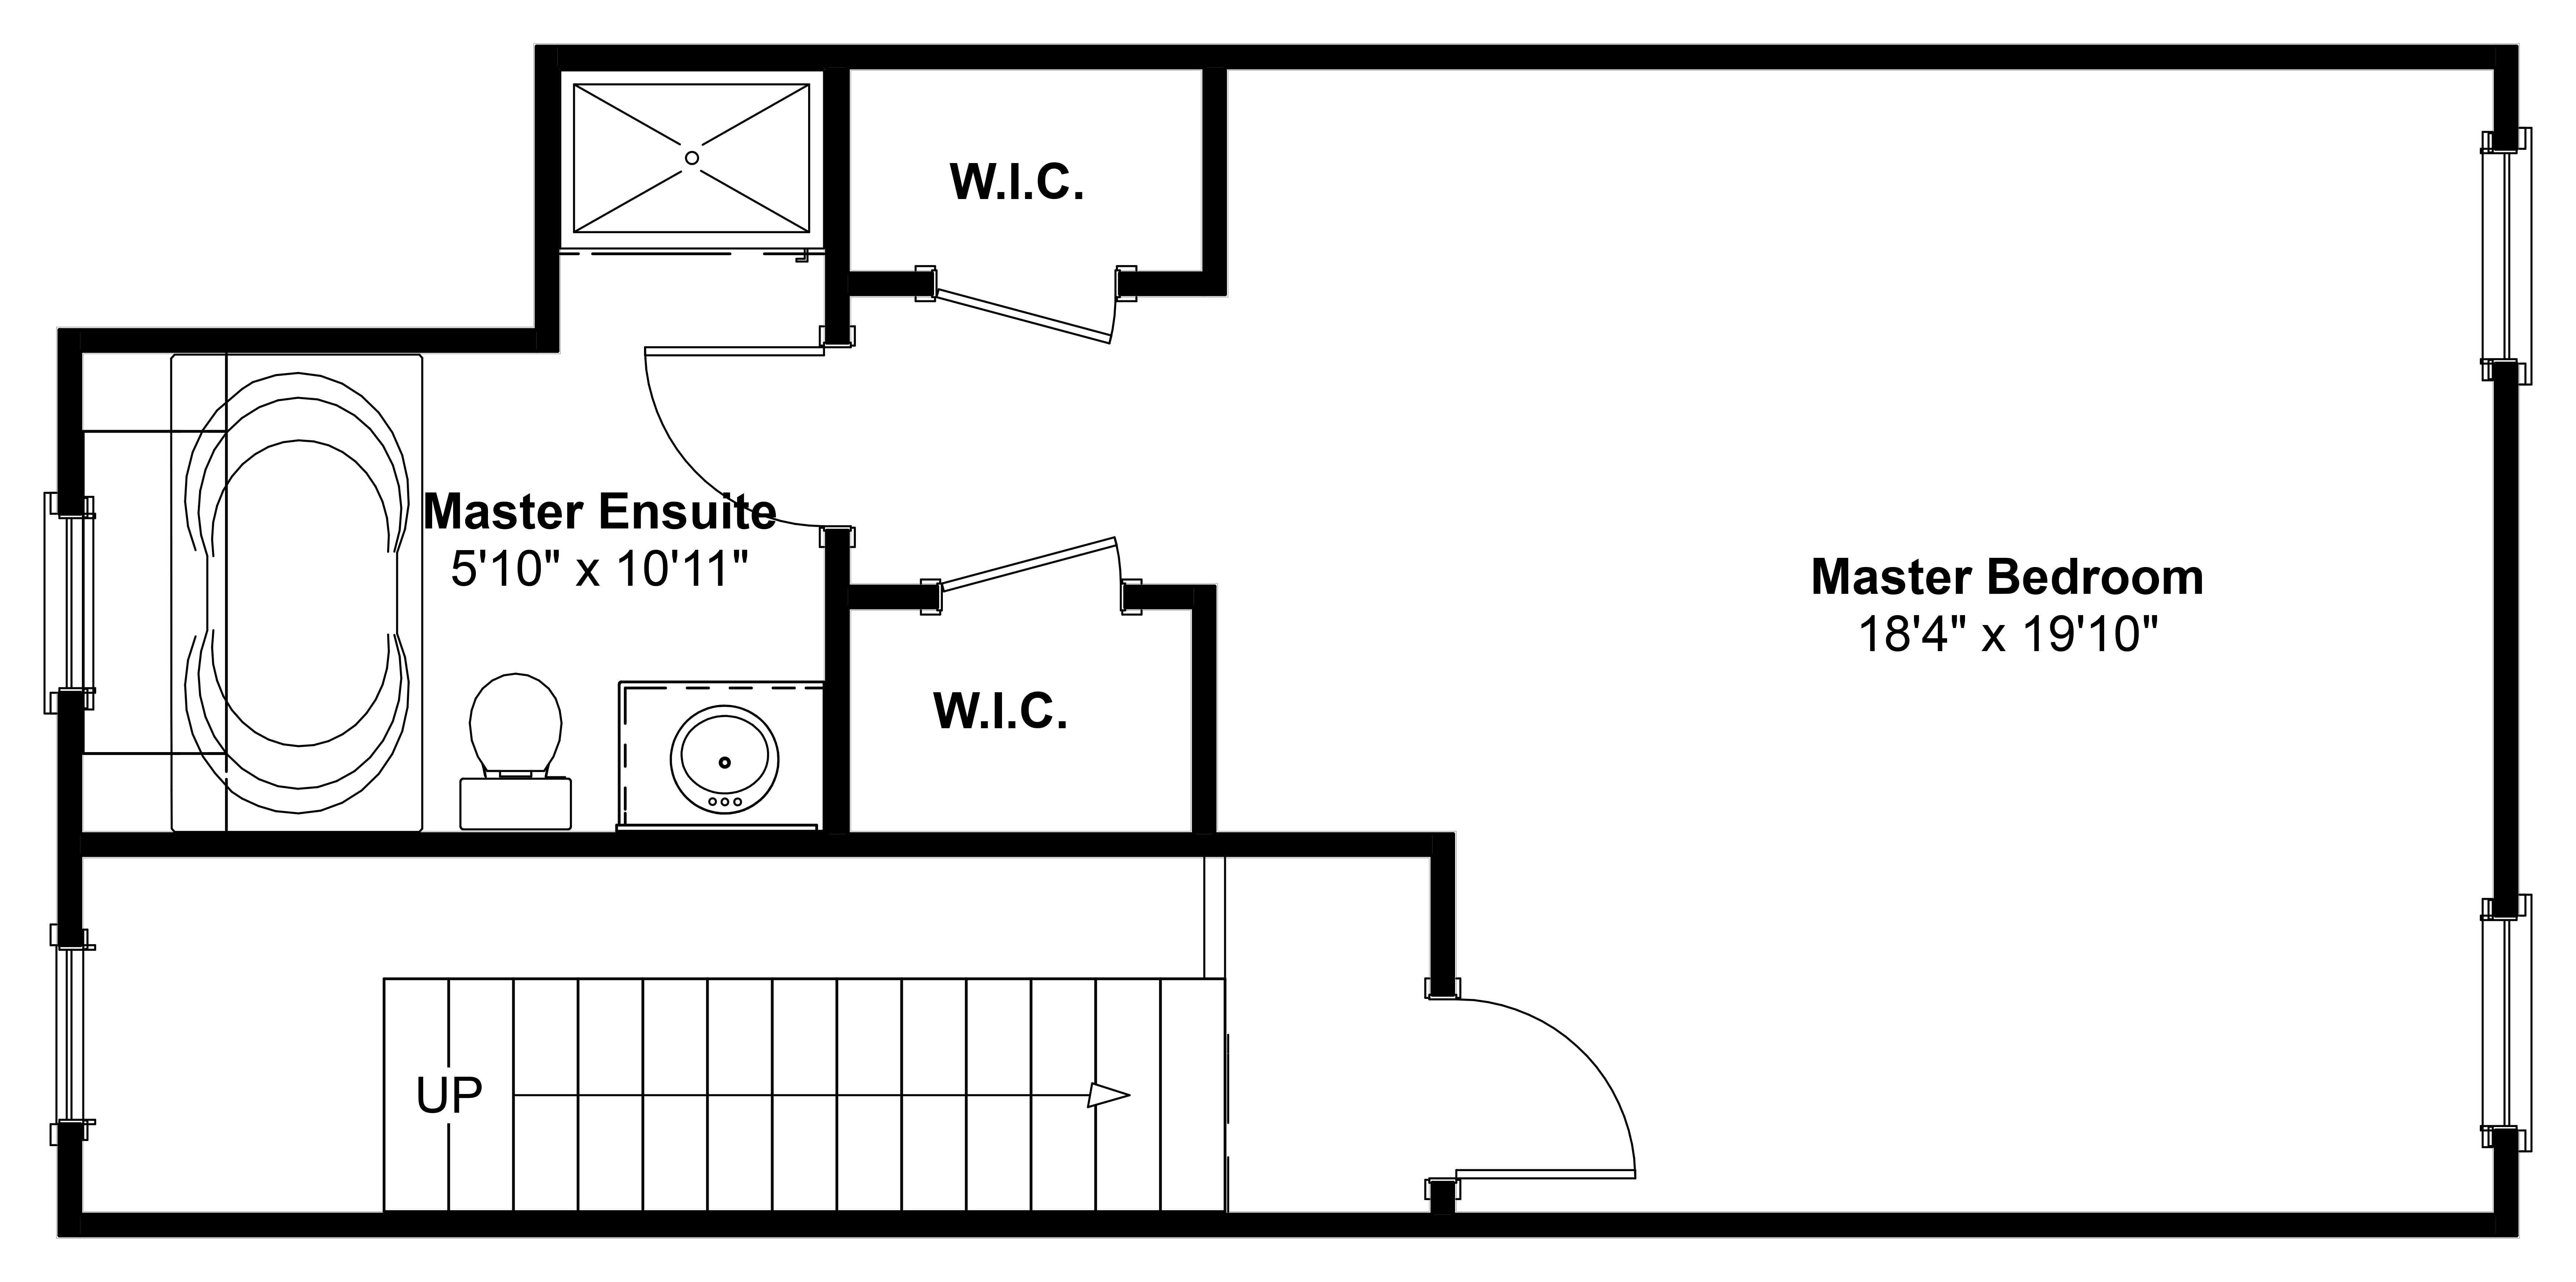 Four Bedroom Large Family House Floor Plans Layout as well D R Horton Floor Plans 1 Story also Sliding Window Floor Plan Drawing in addition Plan Your Dream House also One Story Home Plans With Courtyard. on master bedroom decorating ideas